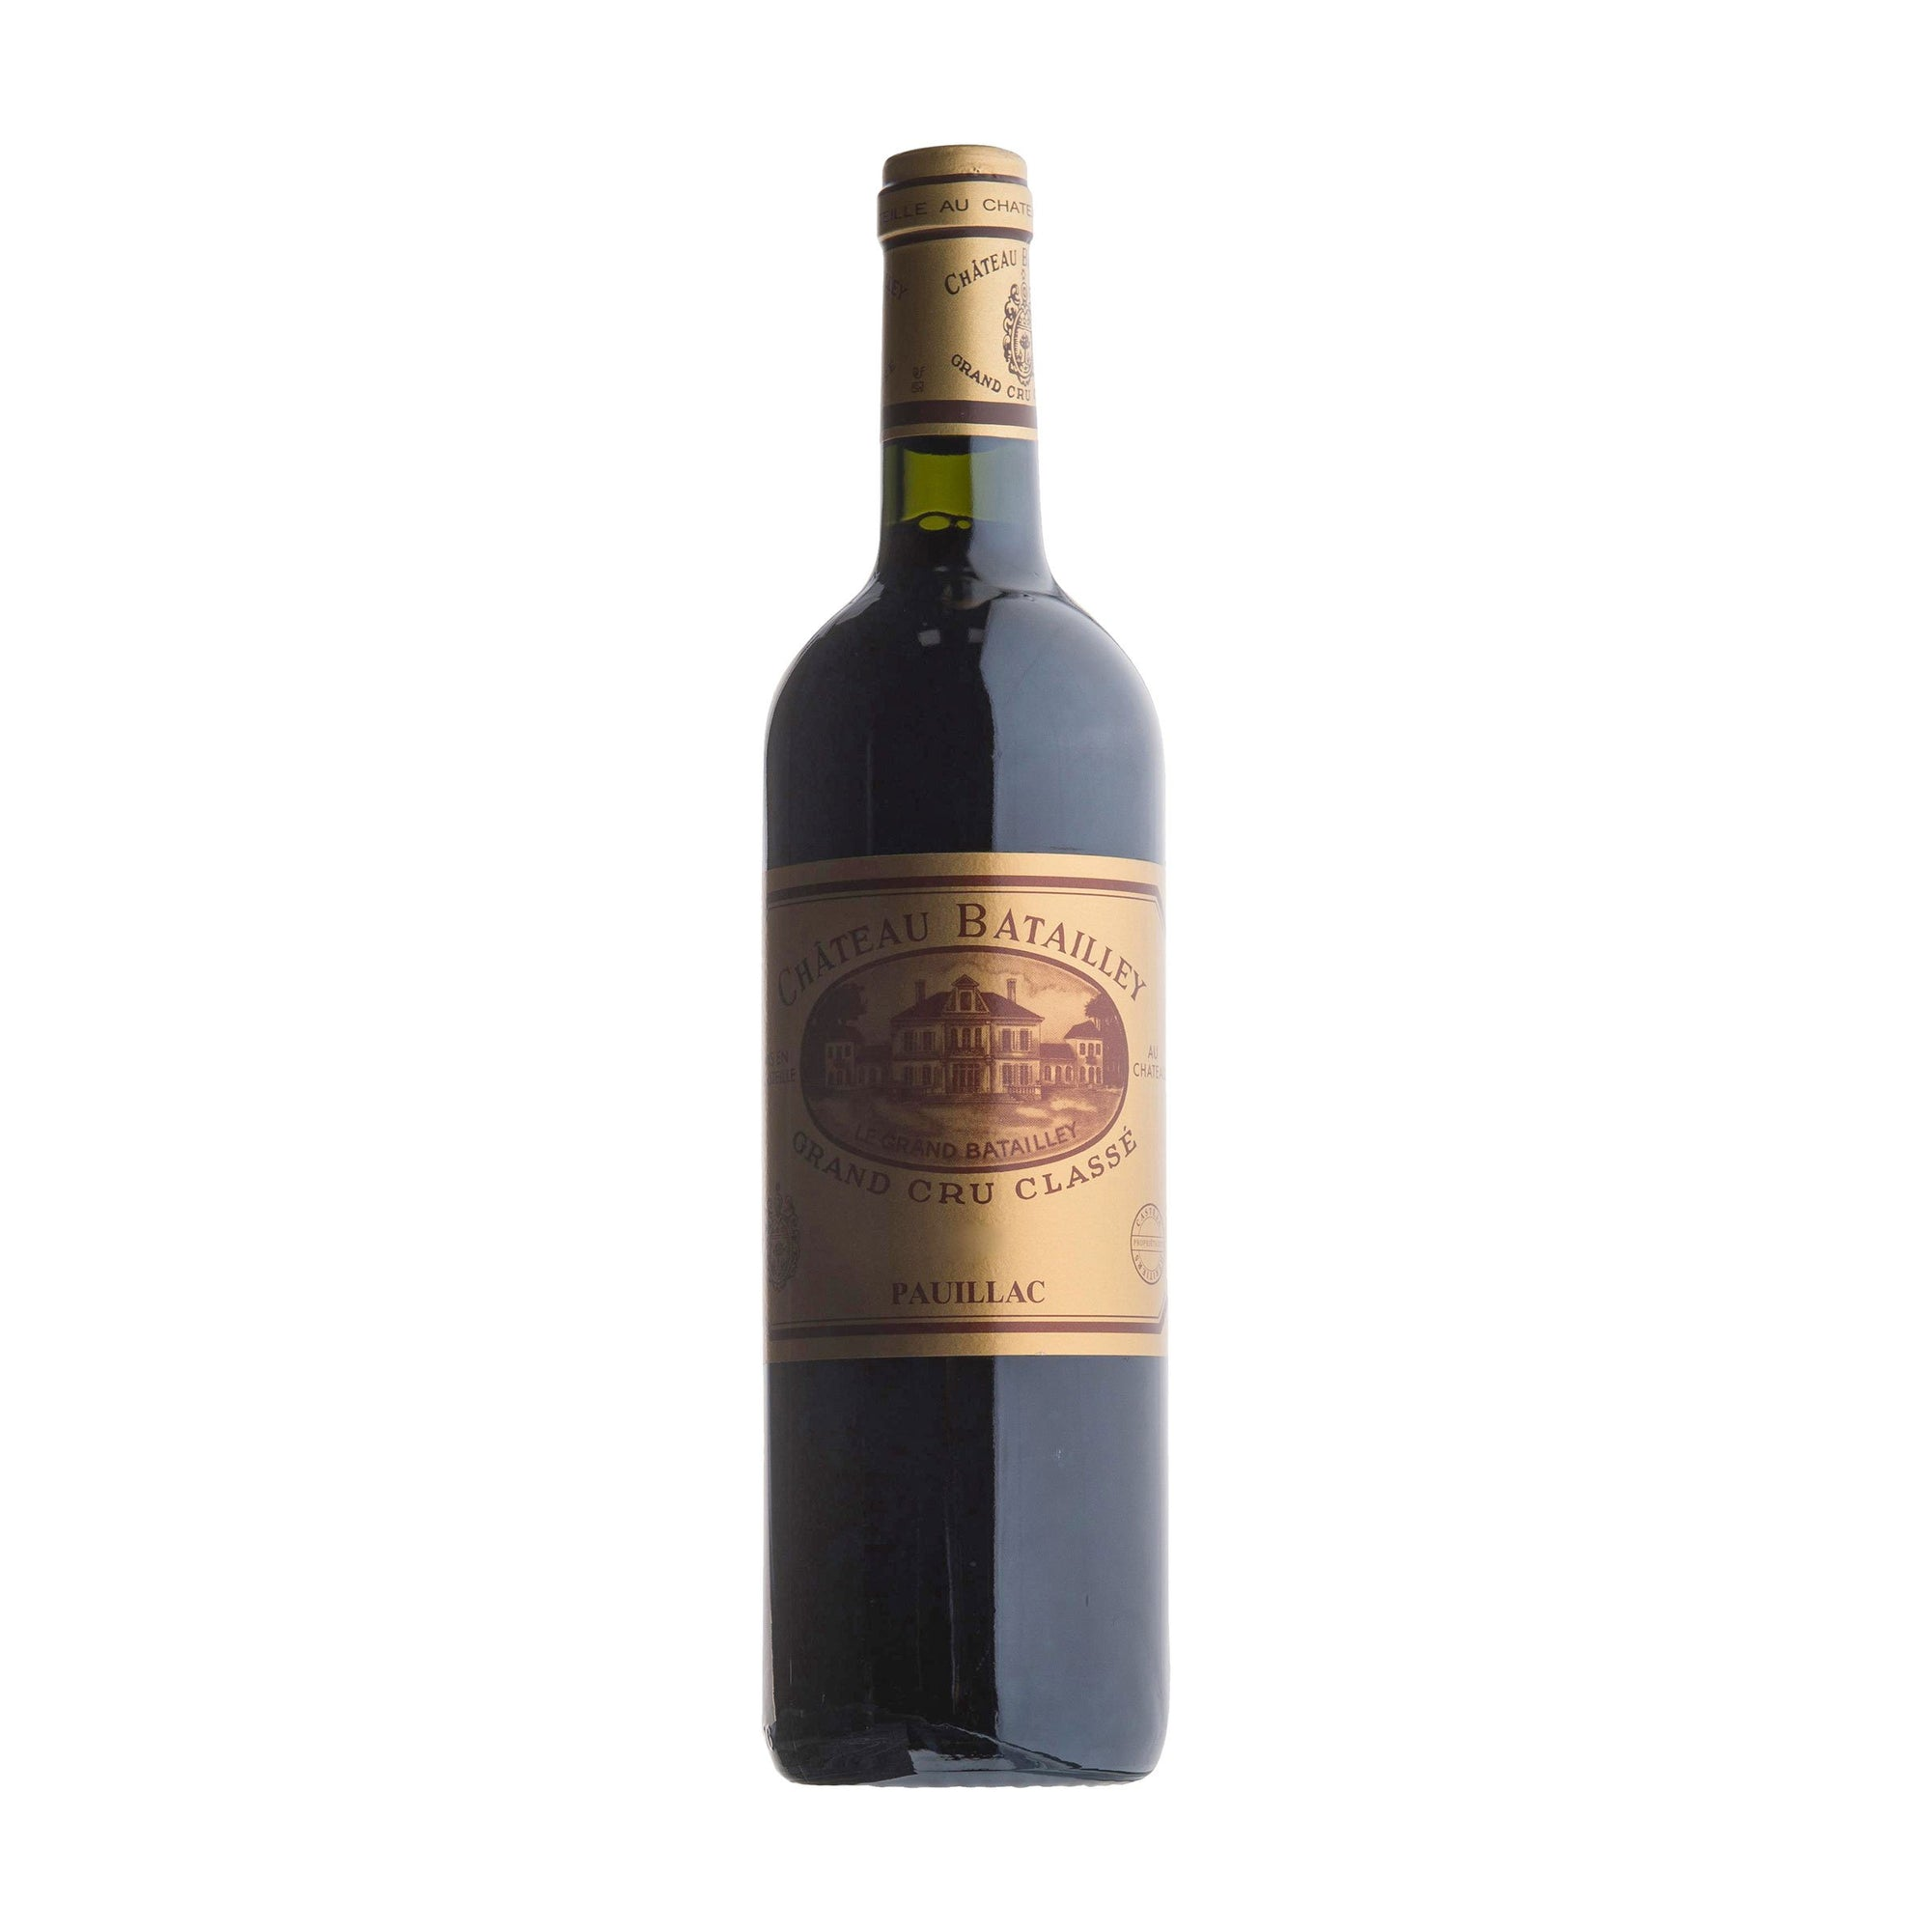 Red Wine Chateau Batailley Pauillac 2000 (4392407891991)